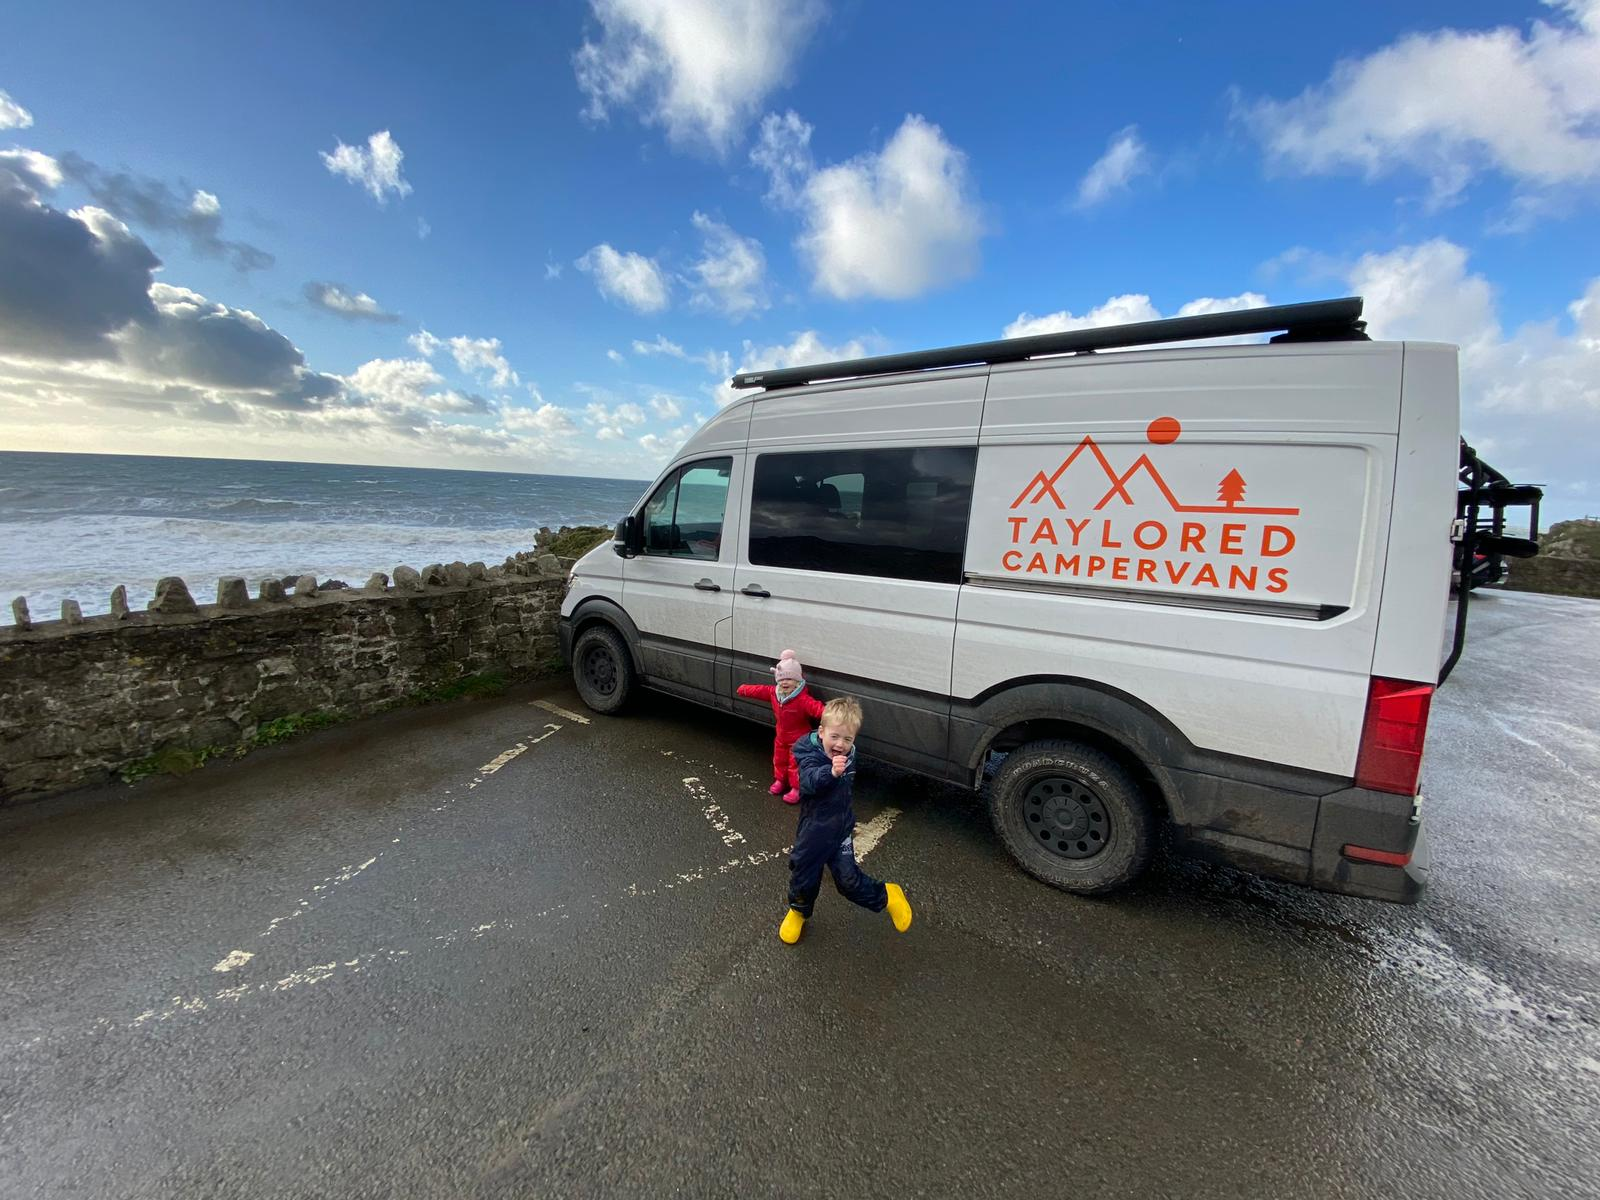 Camping with children - our top tips